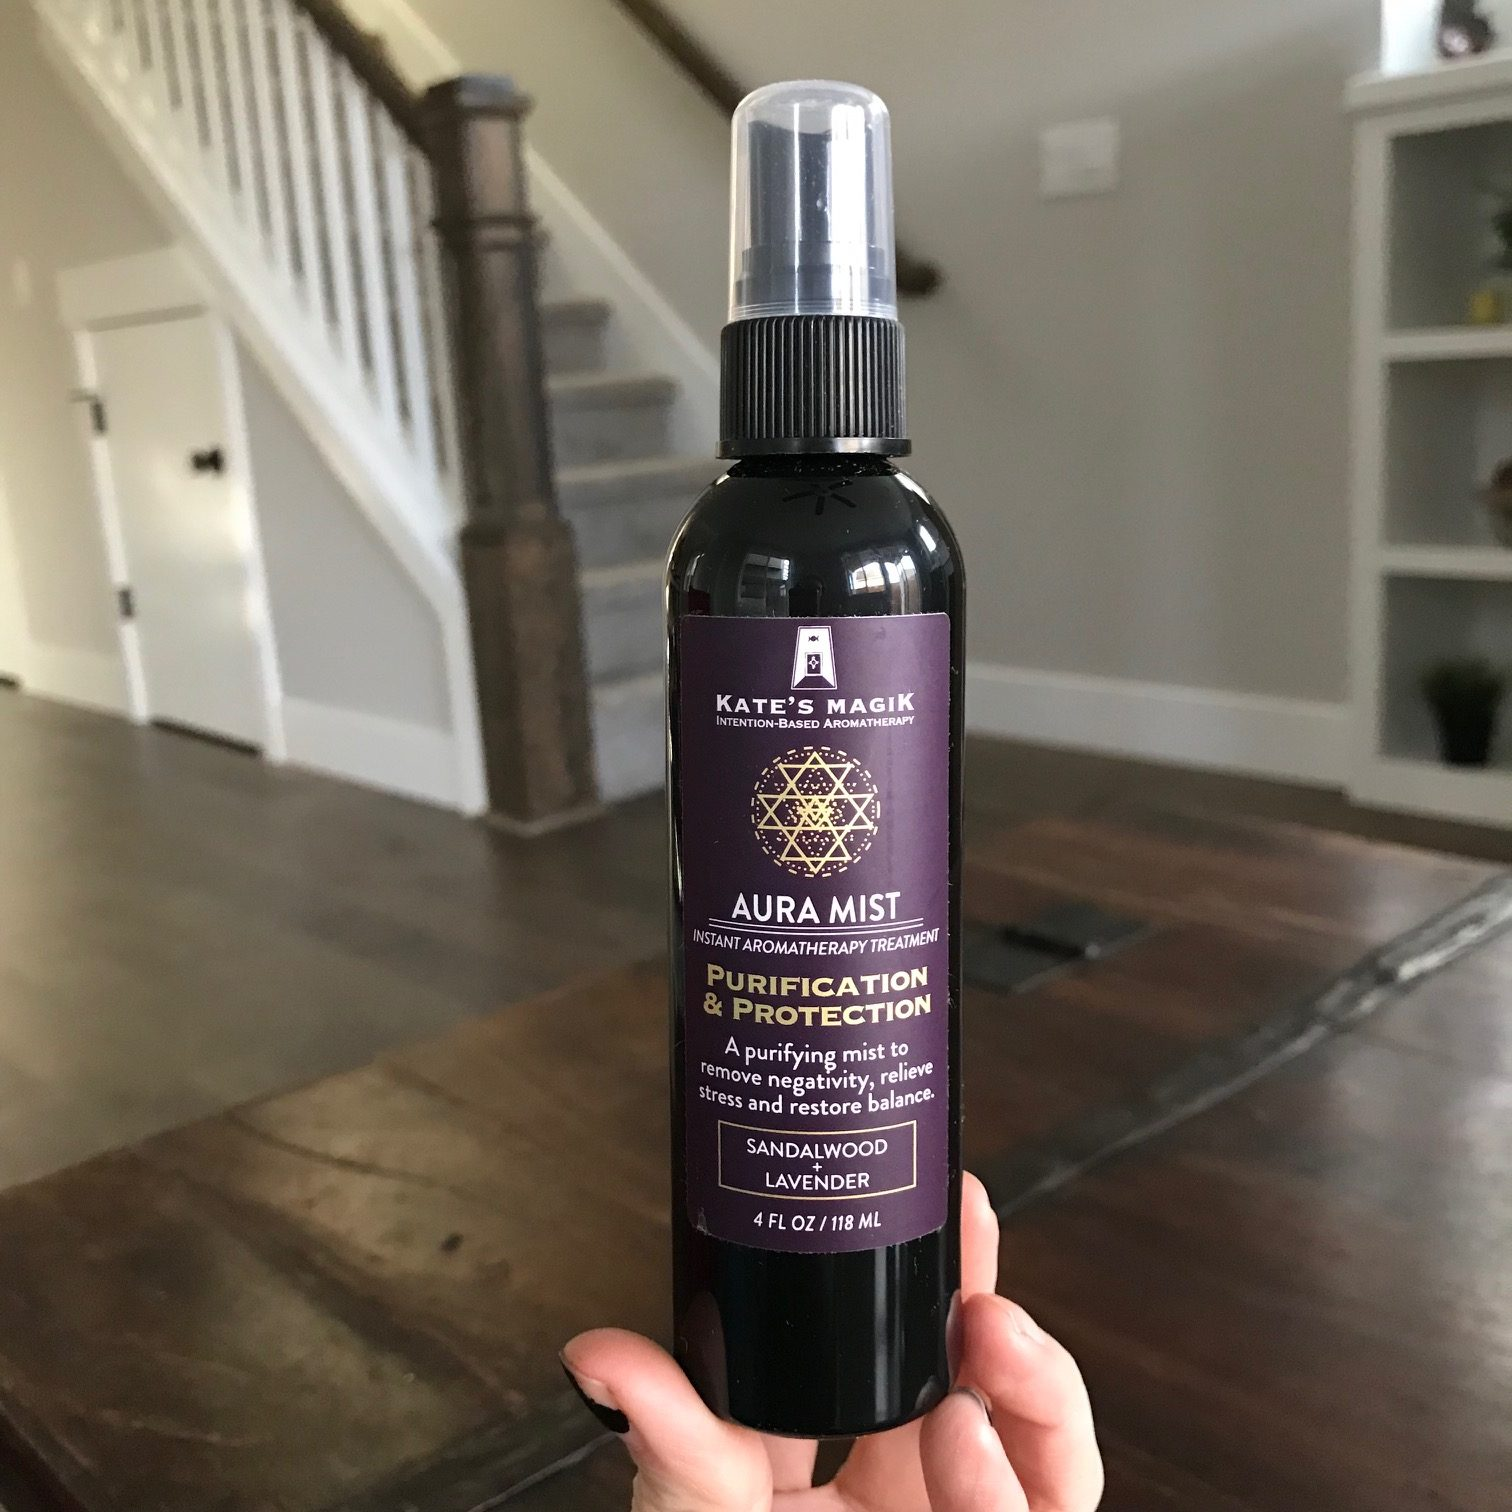 Kate's Magic Purification and Protection Aura Mist